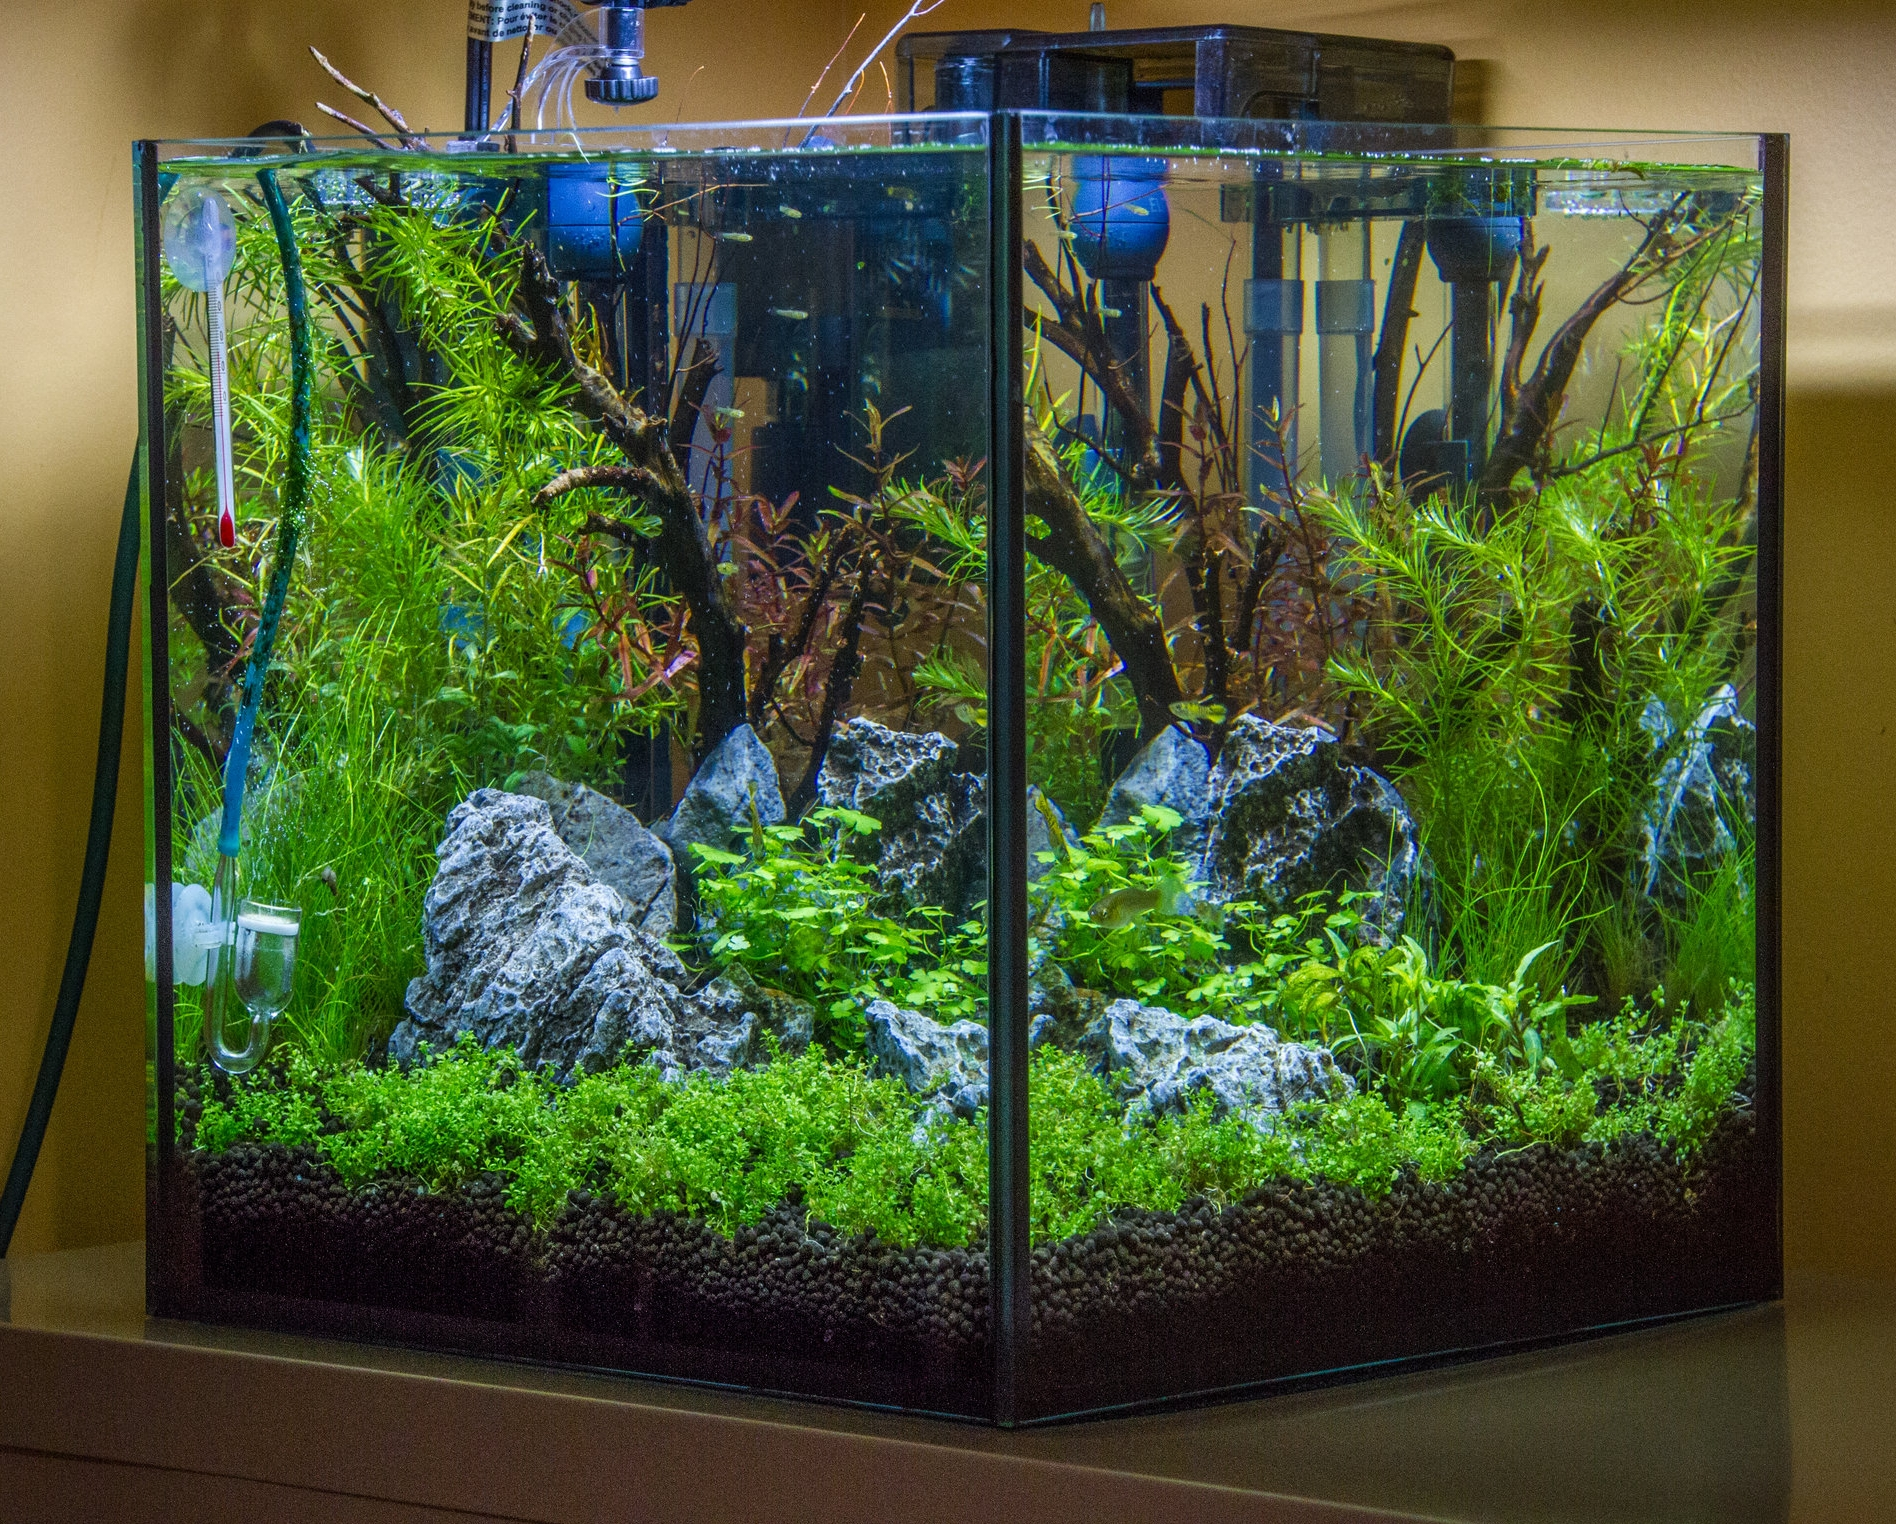 """Just what its name implies. The focus, of course, is on planted nano tanks (small tanks, usually under 10 gallons). There is some overlap with """"Sunken Gardens"""", but the emphasis is on small tanks. This talk has been comletely revamped for 2018, so even if you've seen it before, it won't be the same!"""